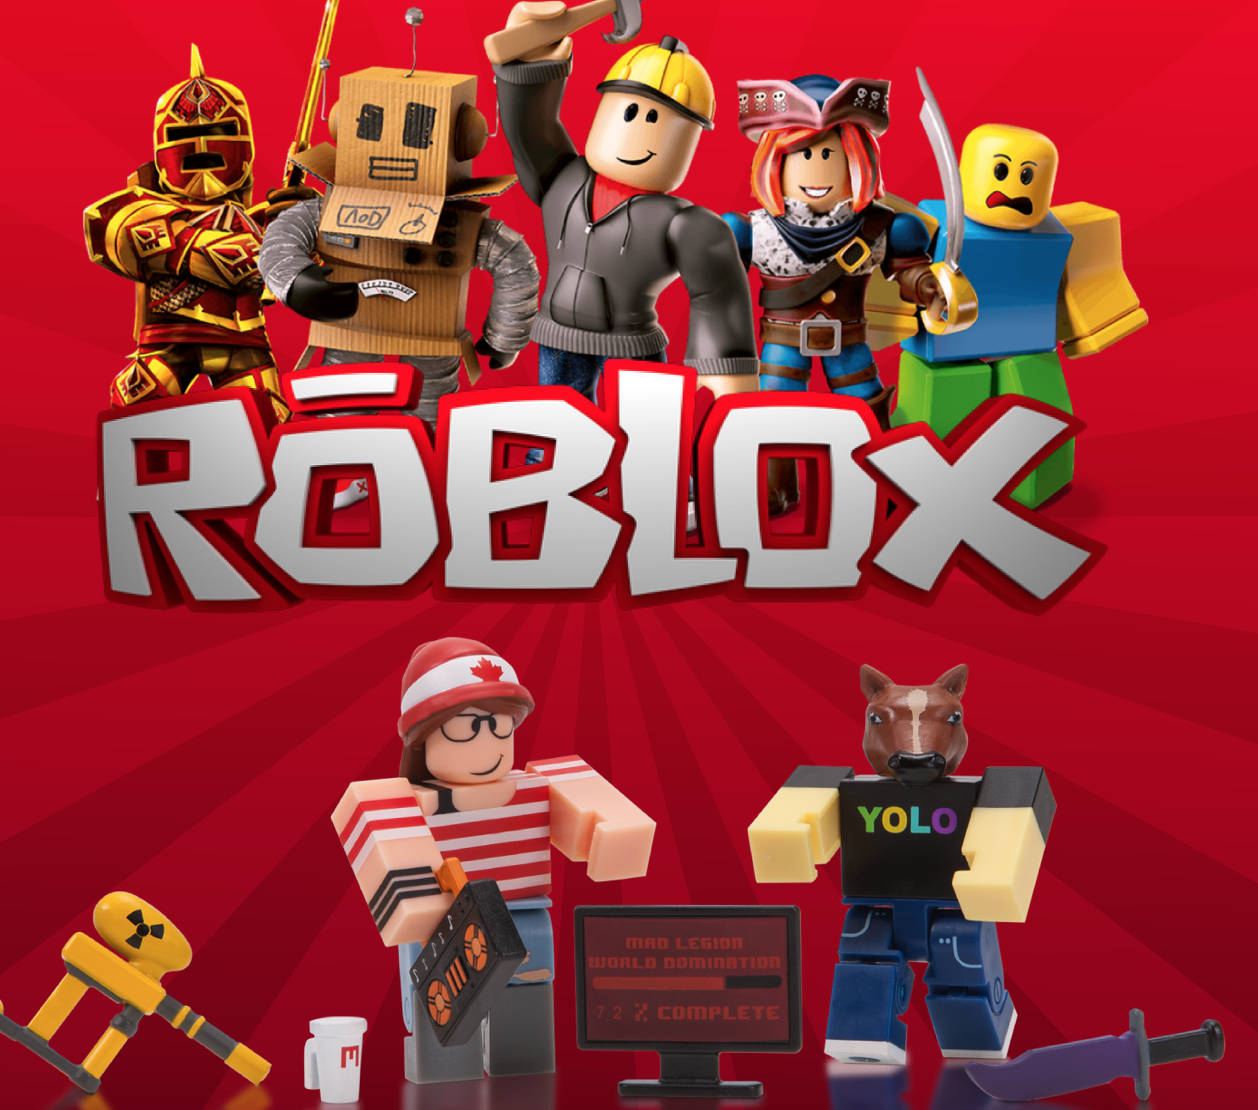 Roblox Mod Apk Download Unlimited Robux The Daily Blog